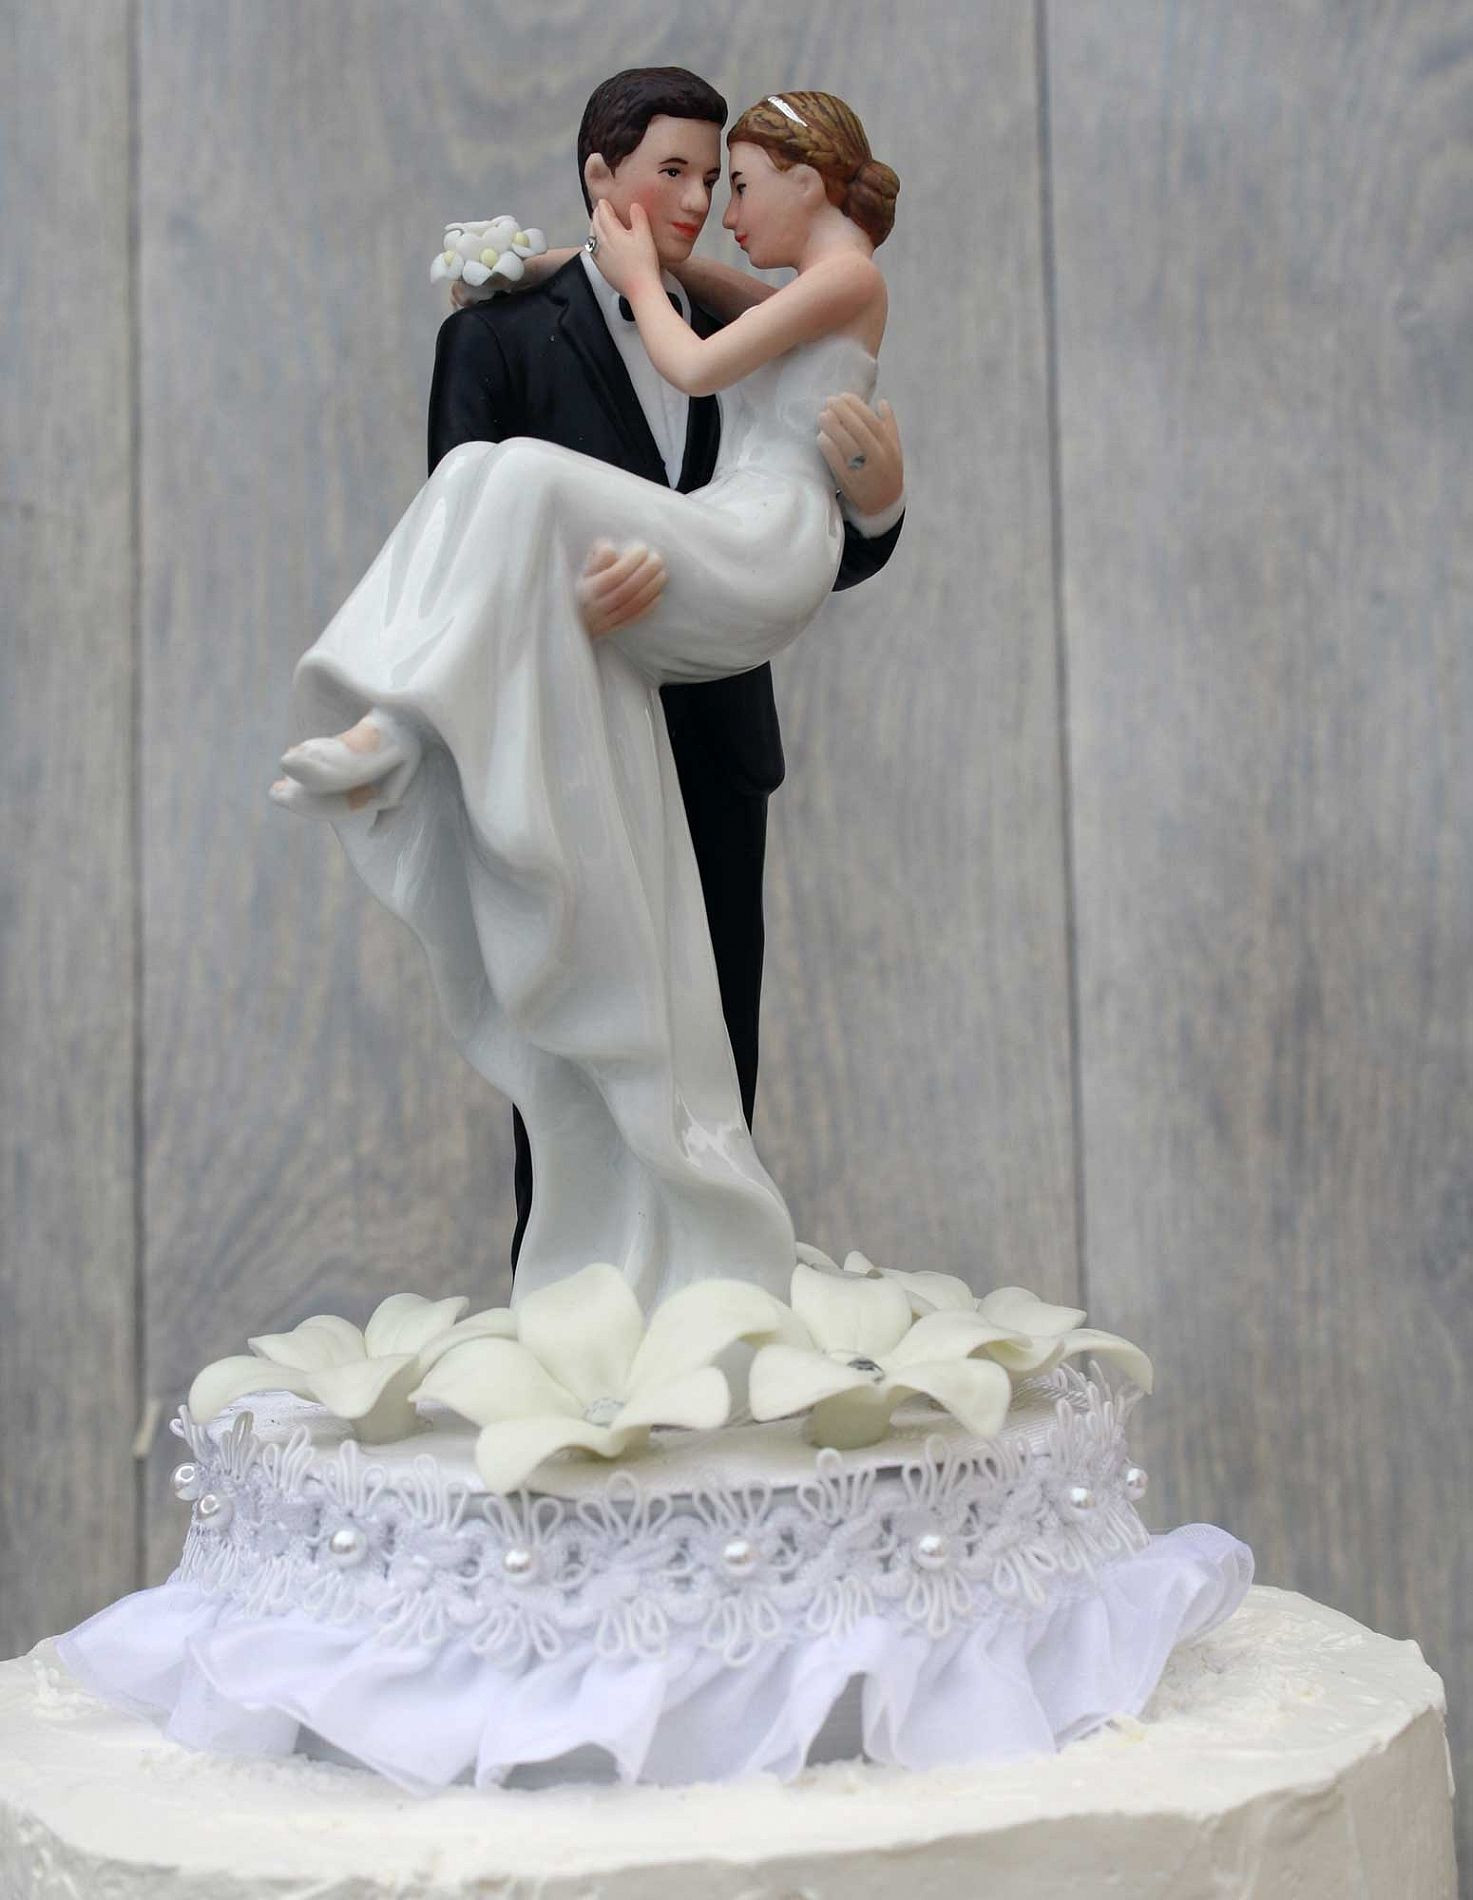 Bride And Groom Toppers For Wedding Cakes  Traditional wedding cake toppers bride and groom idea in